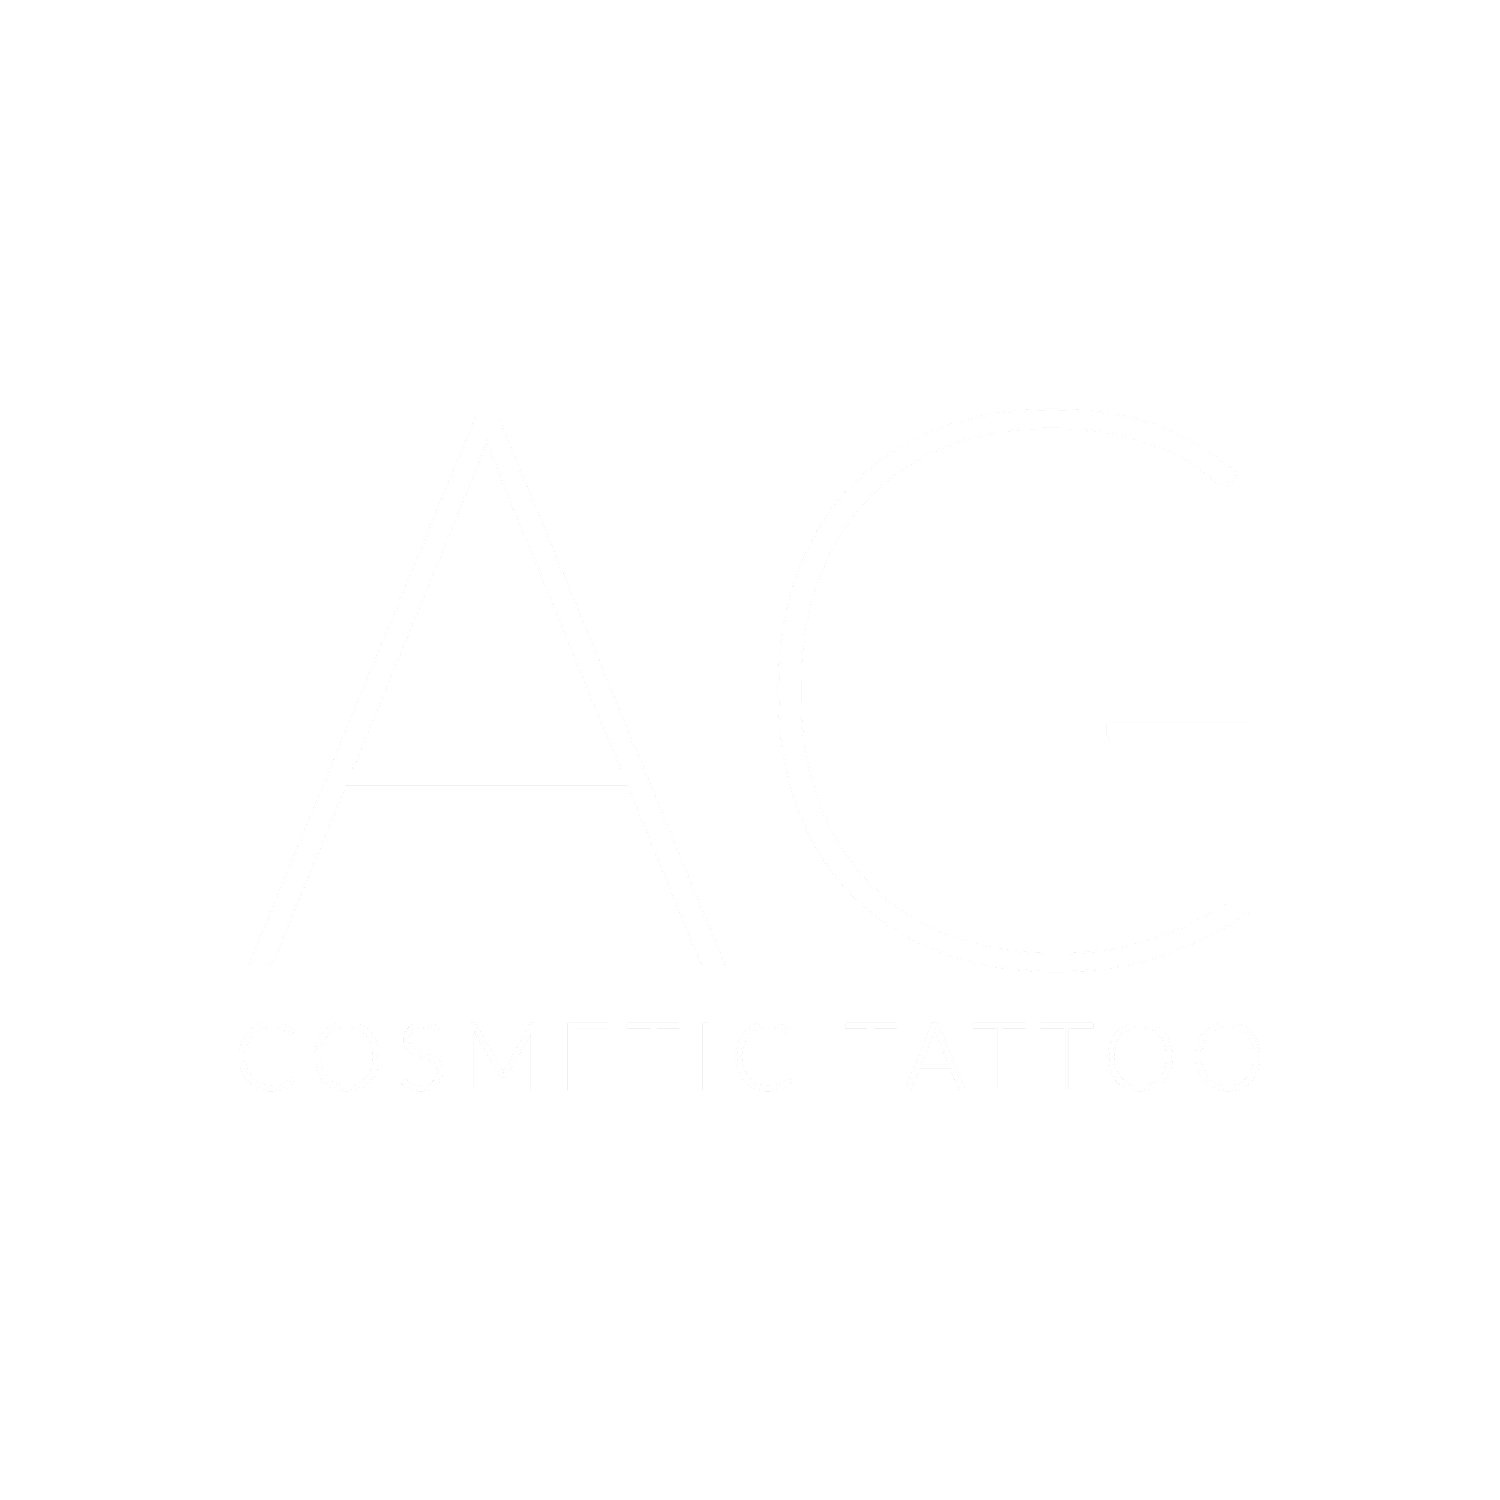 Audrey Glass Cosmetic Tattoo